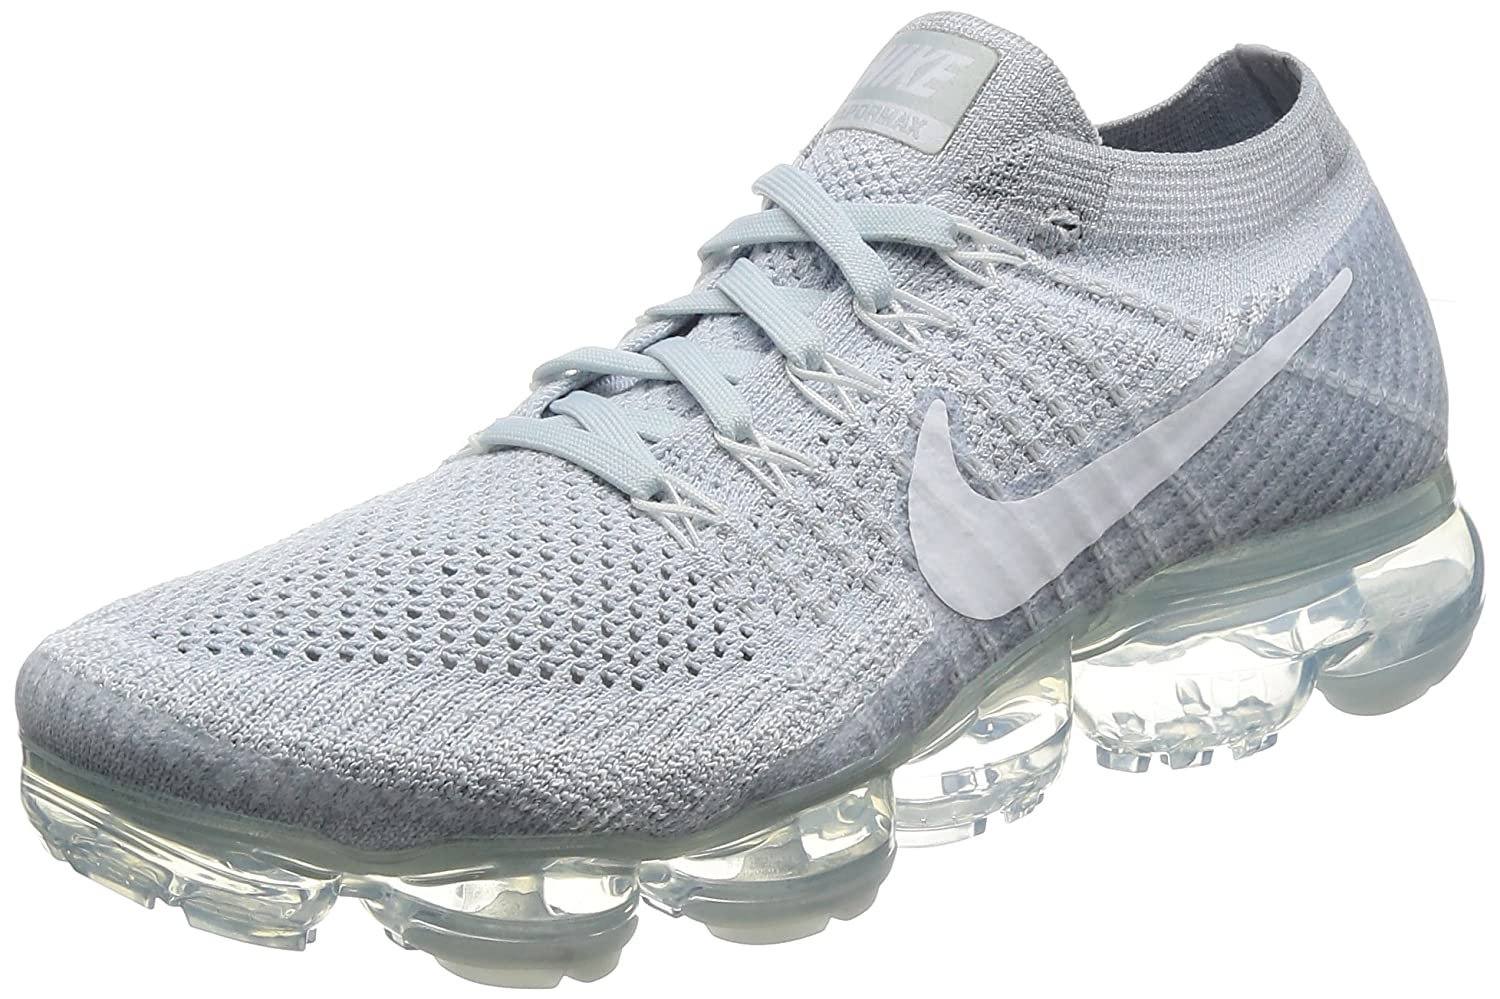 5a7a2394fd Amazon.com | Men's Nike Air Vapormax Flyknit Running Shoe | Fashion Sneakers